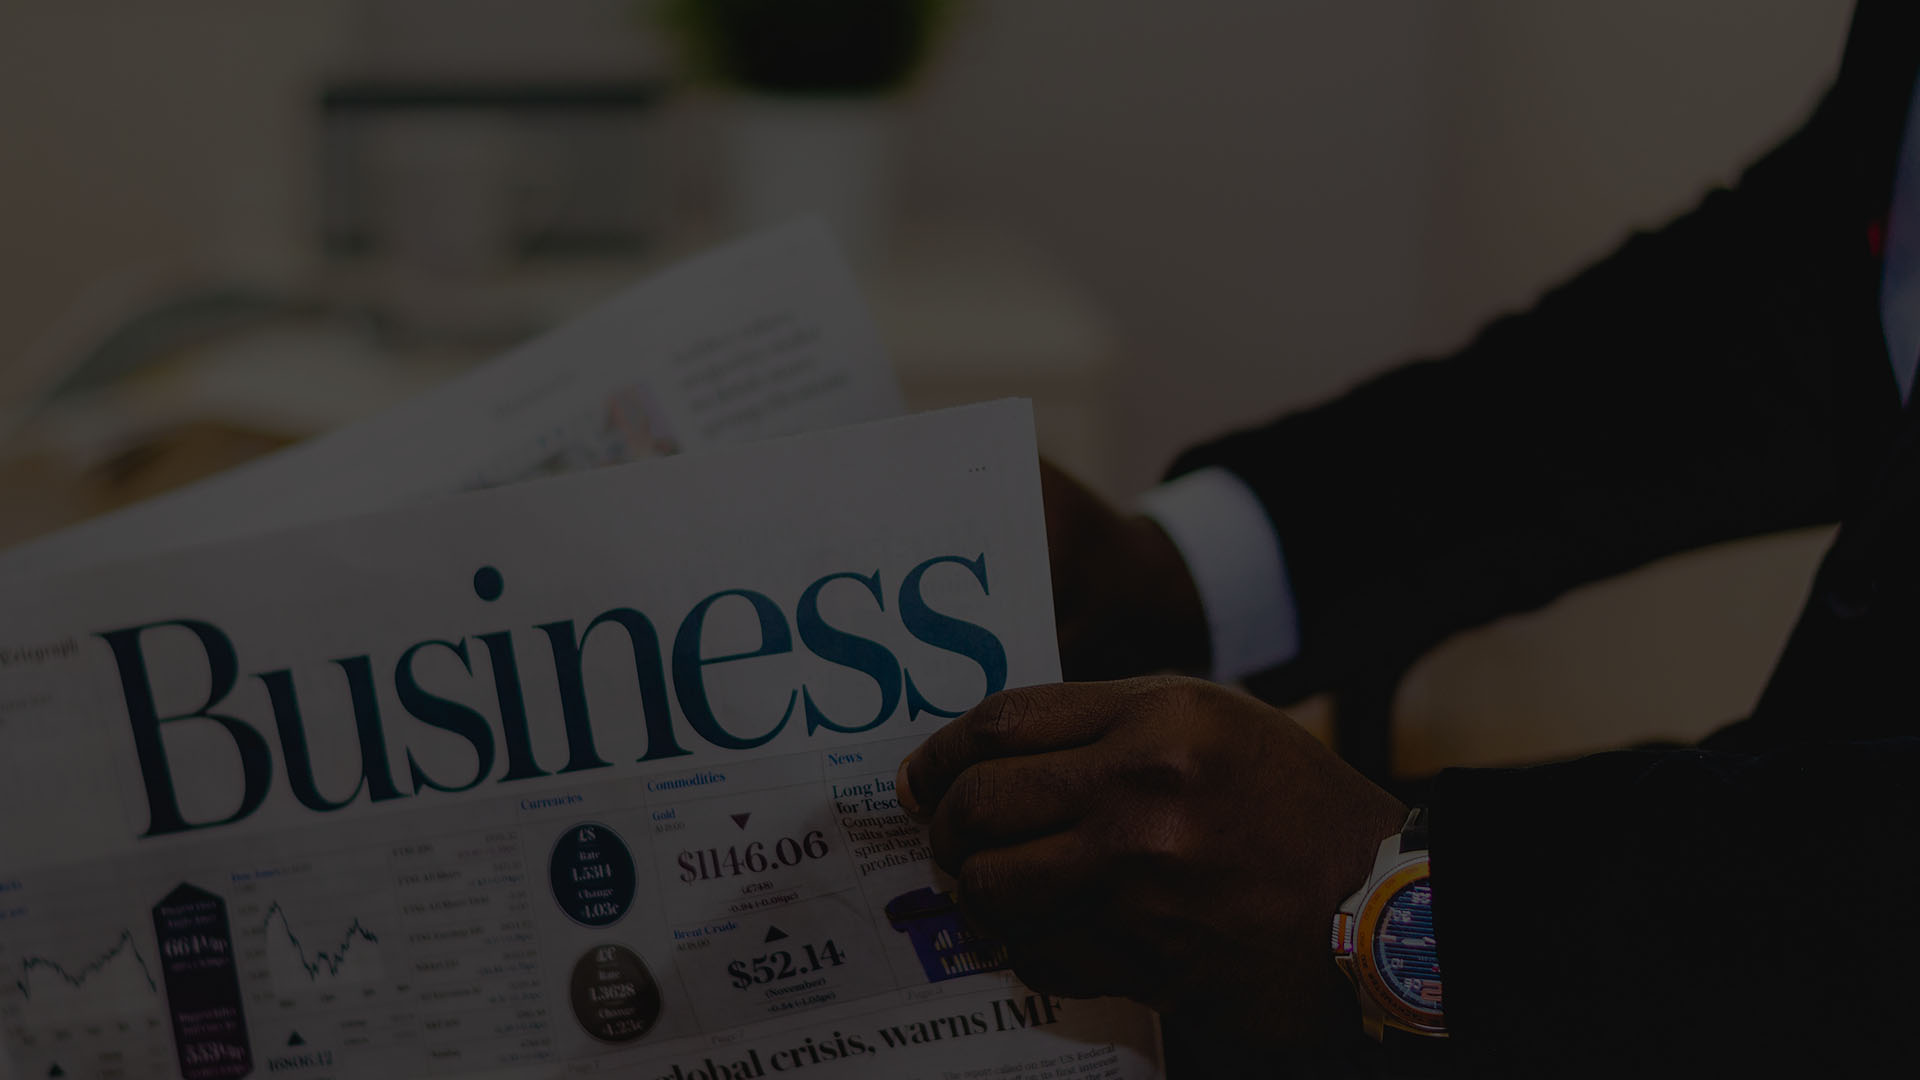 Reading business section of newspaper